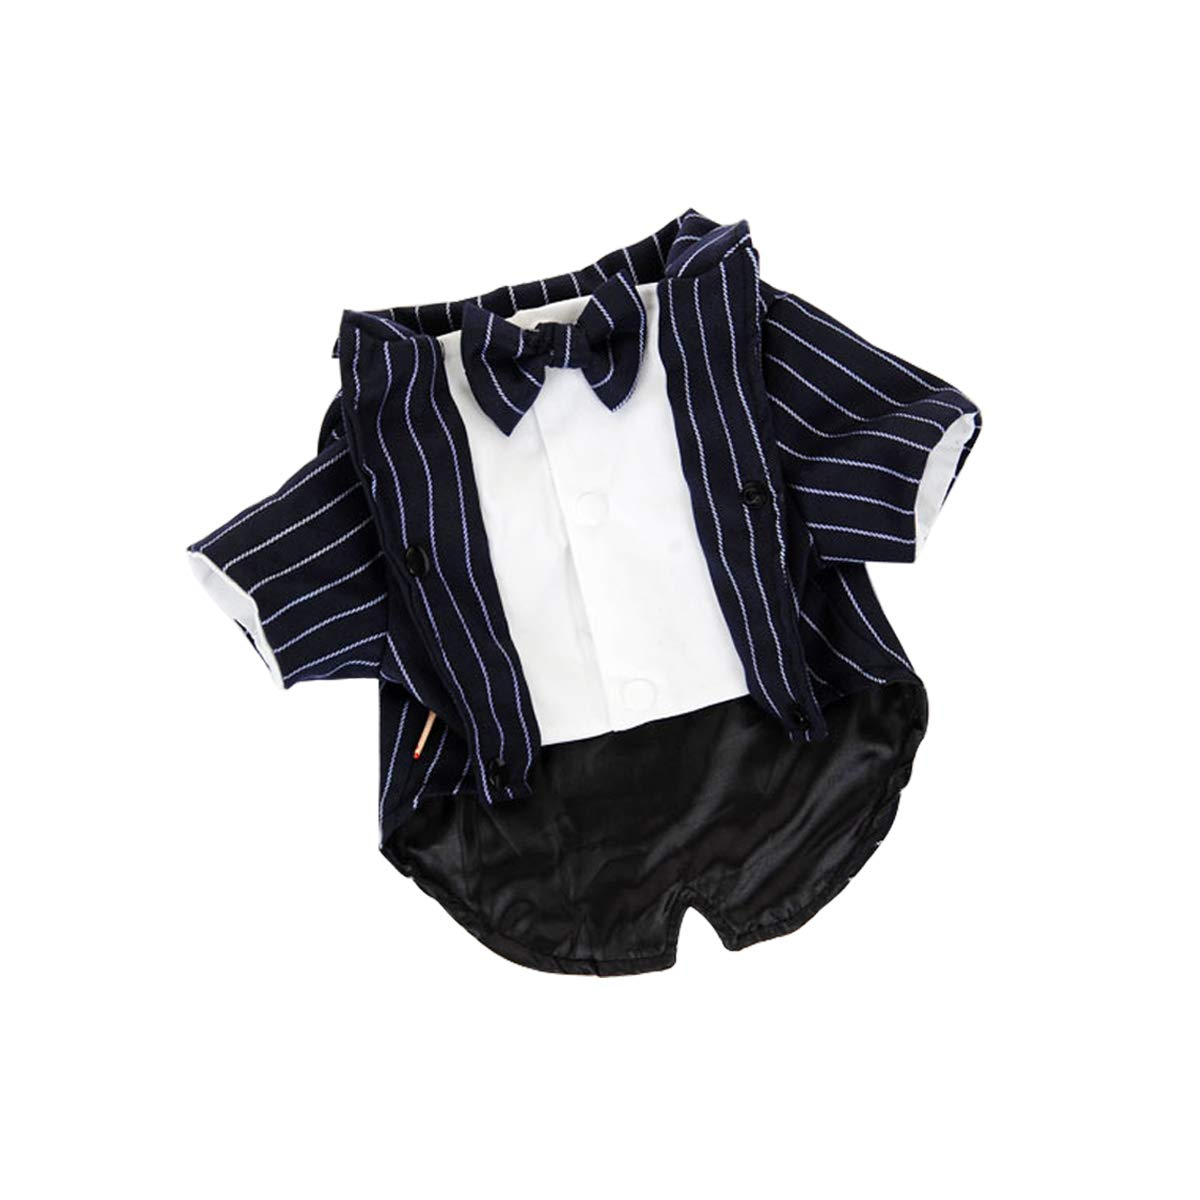 L bouti1583 Formal Navy Striped Tuxedo with Bow Tie for Dogs Cats Puppy Suit Wedding Party Photo